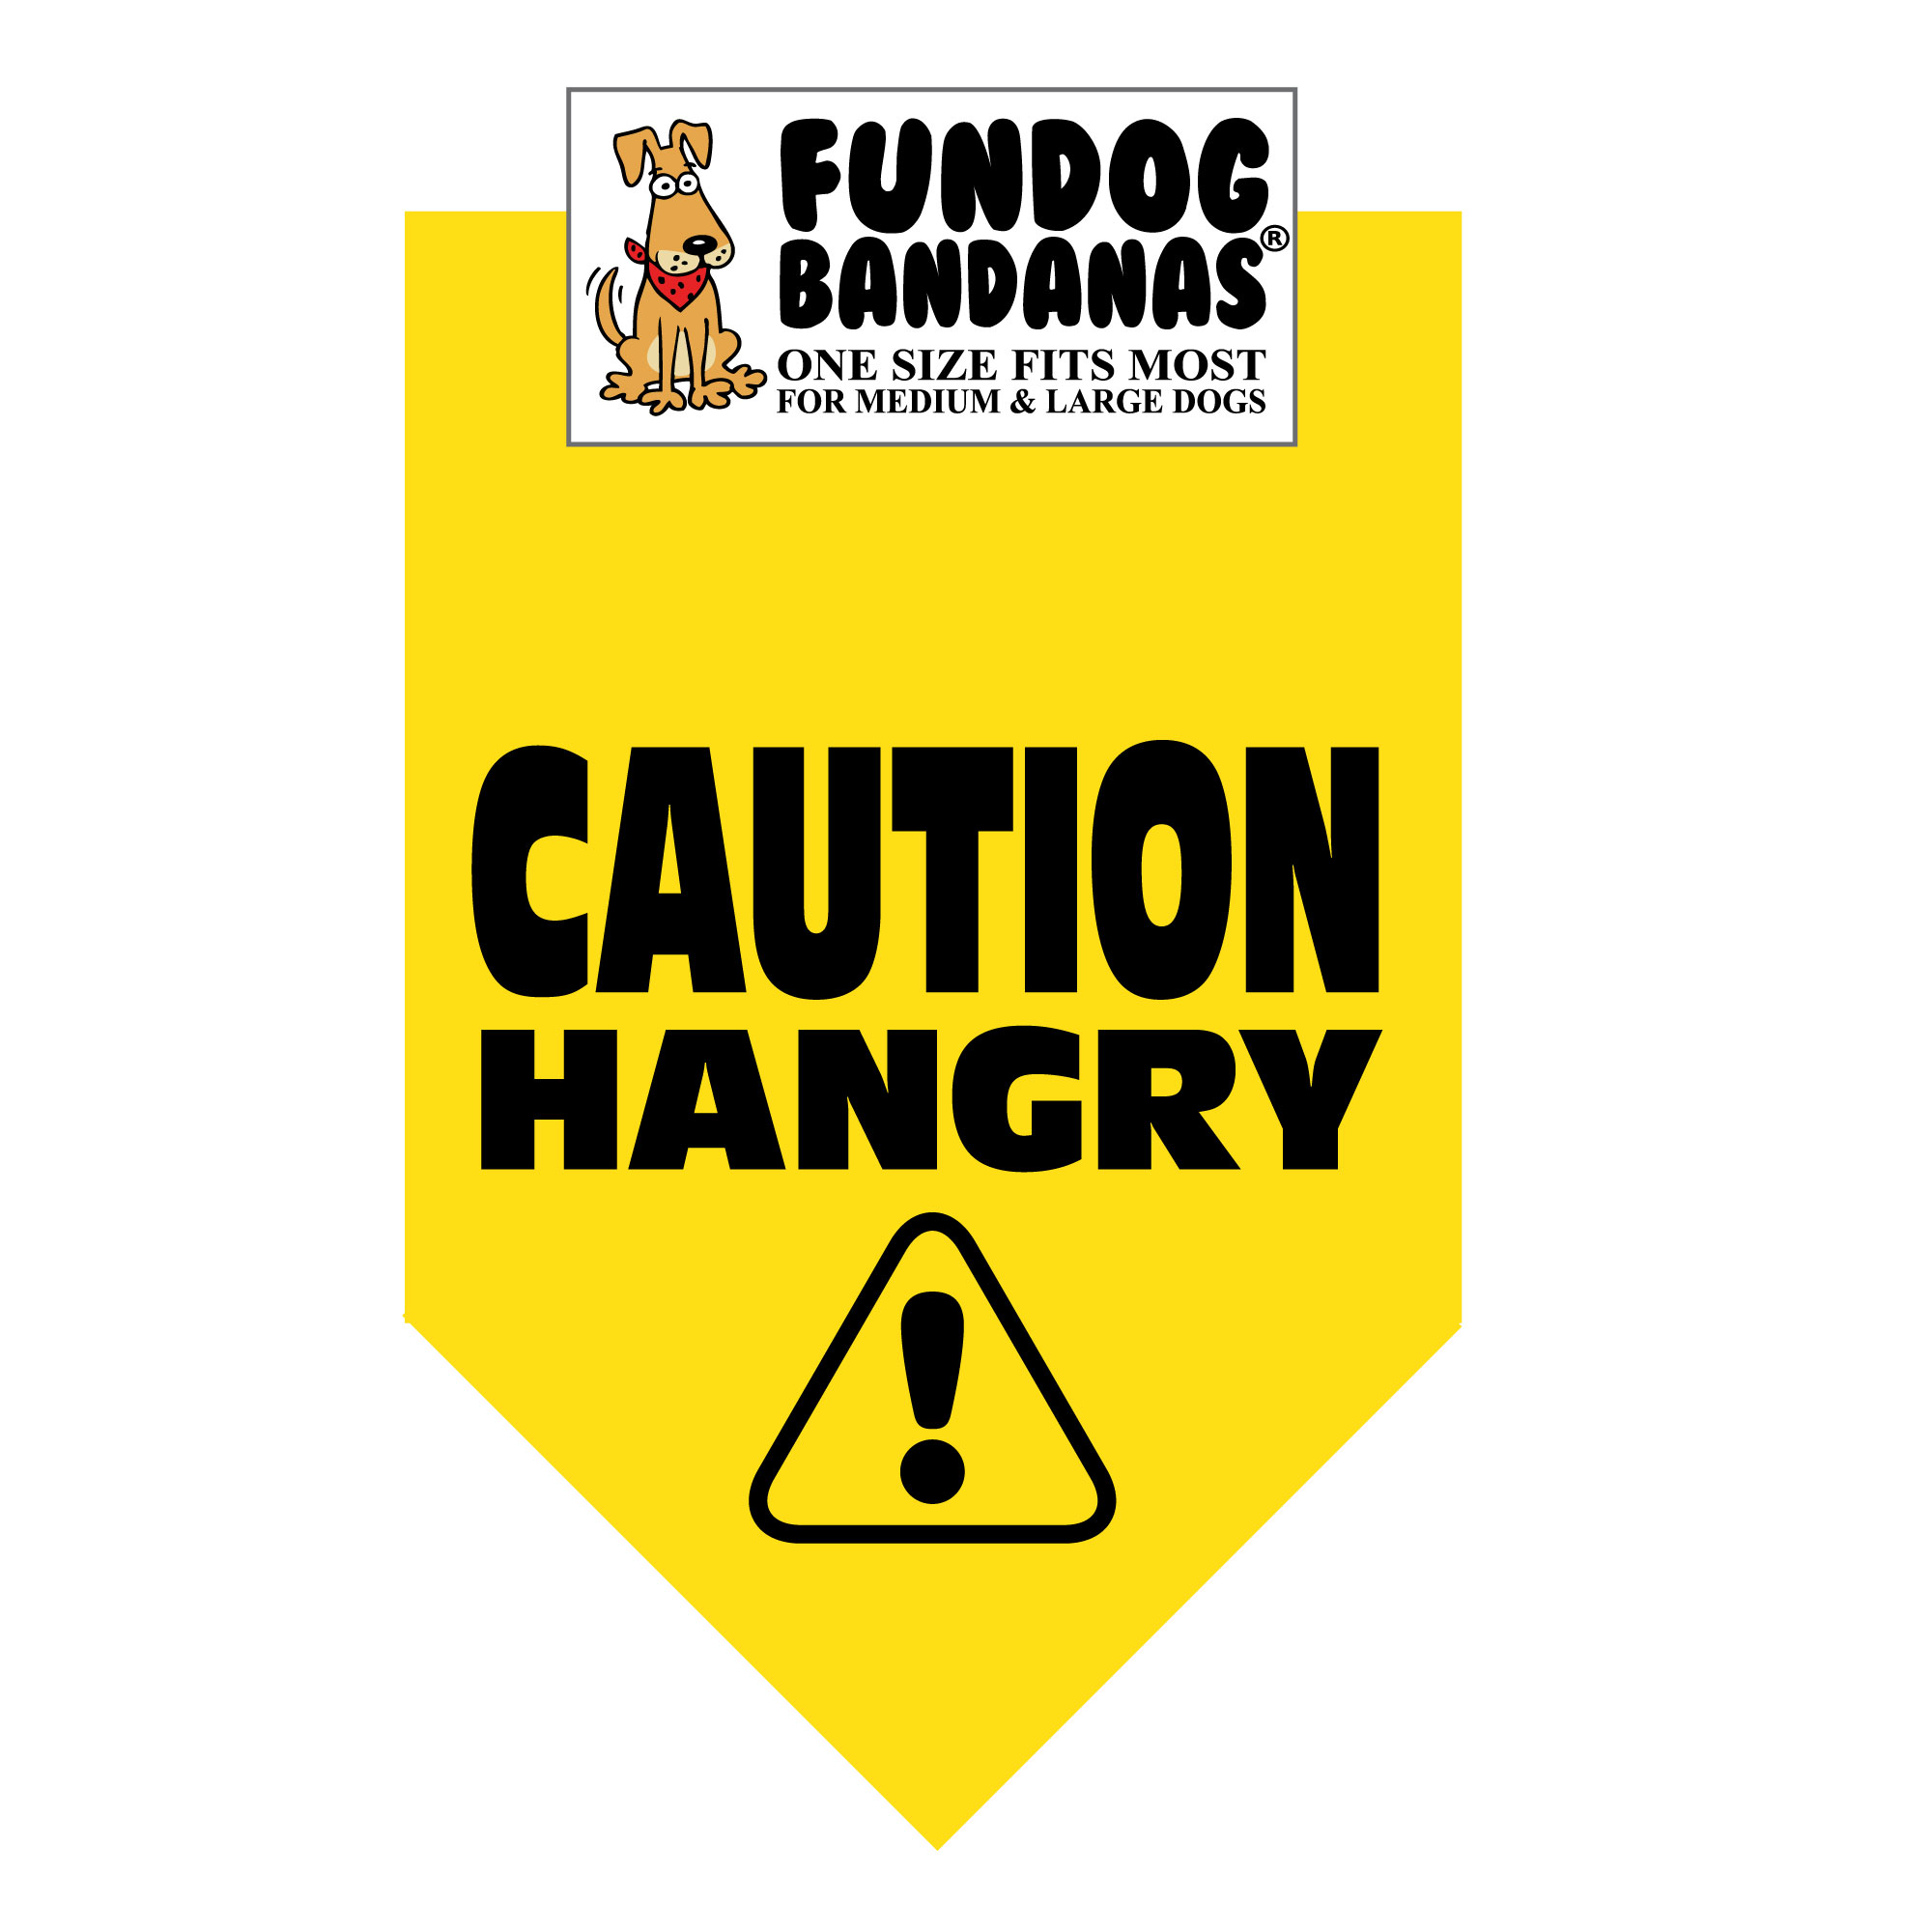 Fun Dog Bandana - Caution HANGRY - One Size Fits Most for Medium to Large Dogs, gold pet scarf